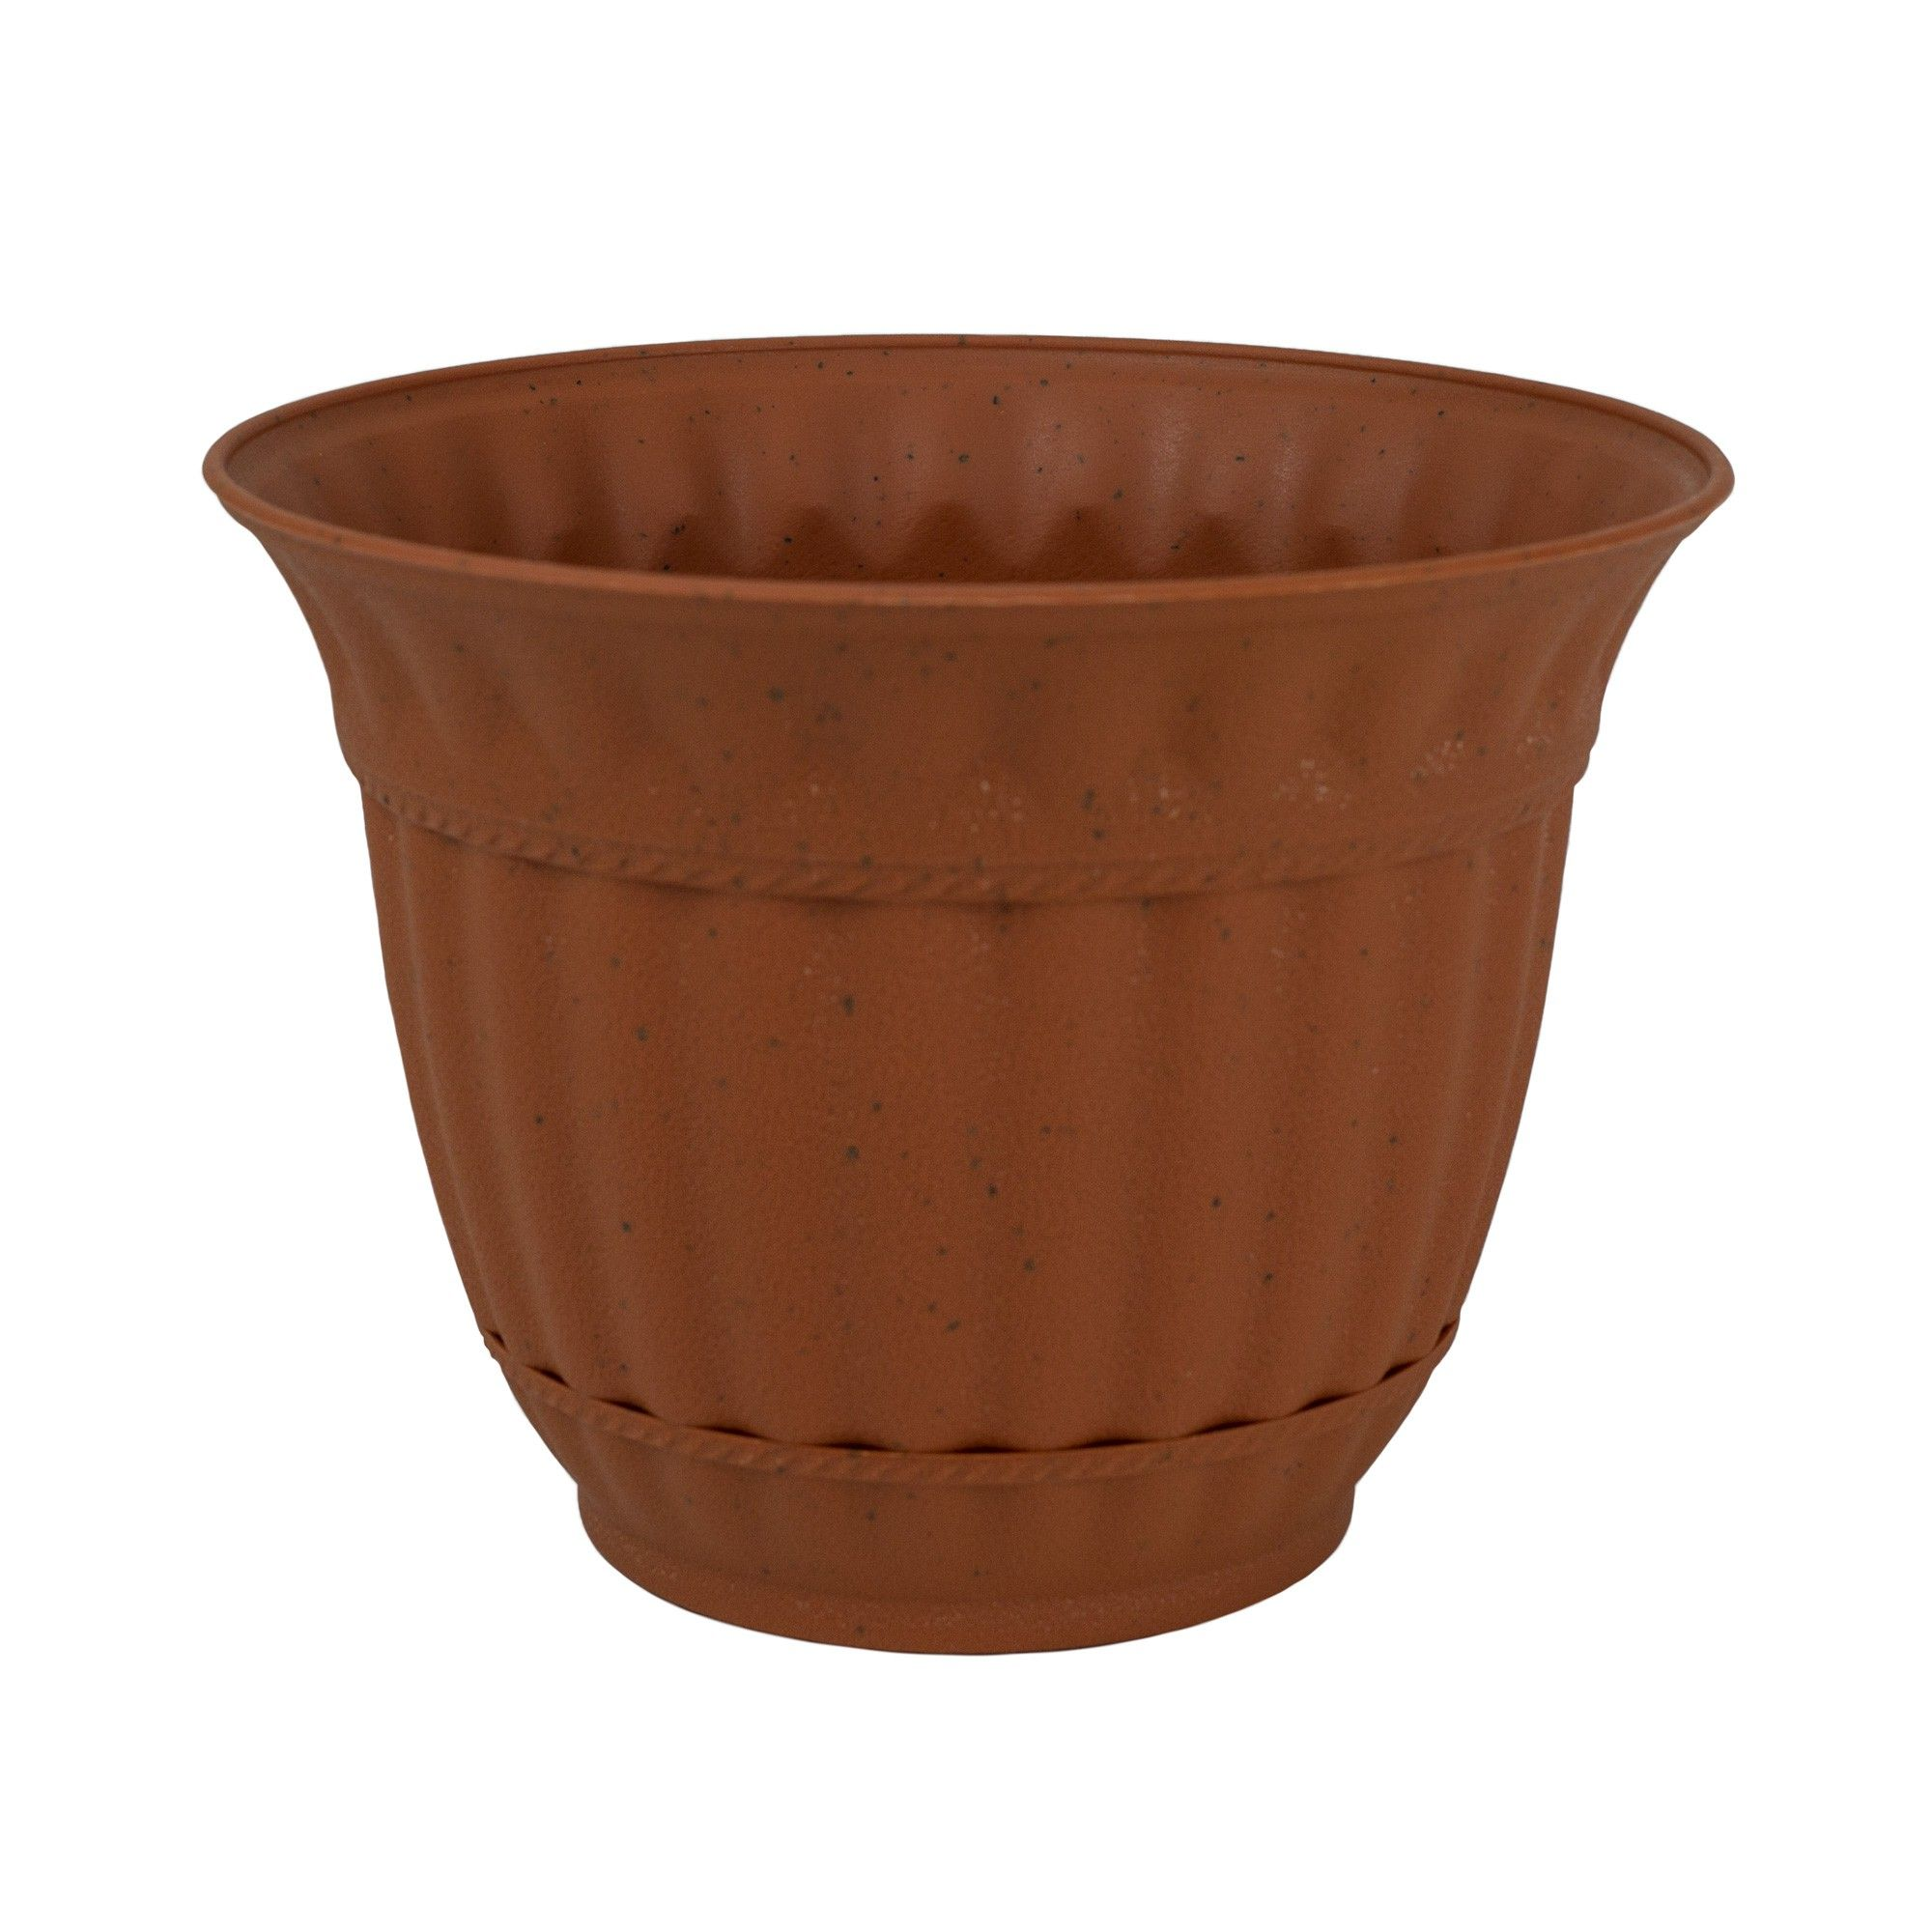 Misco 6 Inch Sienna Burn Plastic Attached Saucer Milano Flower Pot Or Garden Planter Con Imagenes